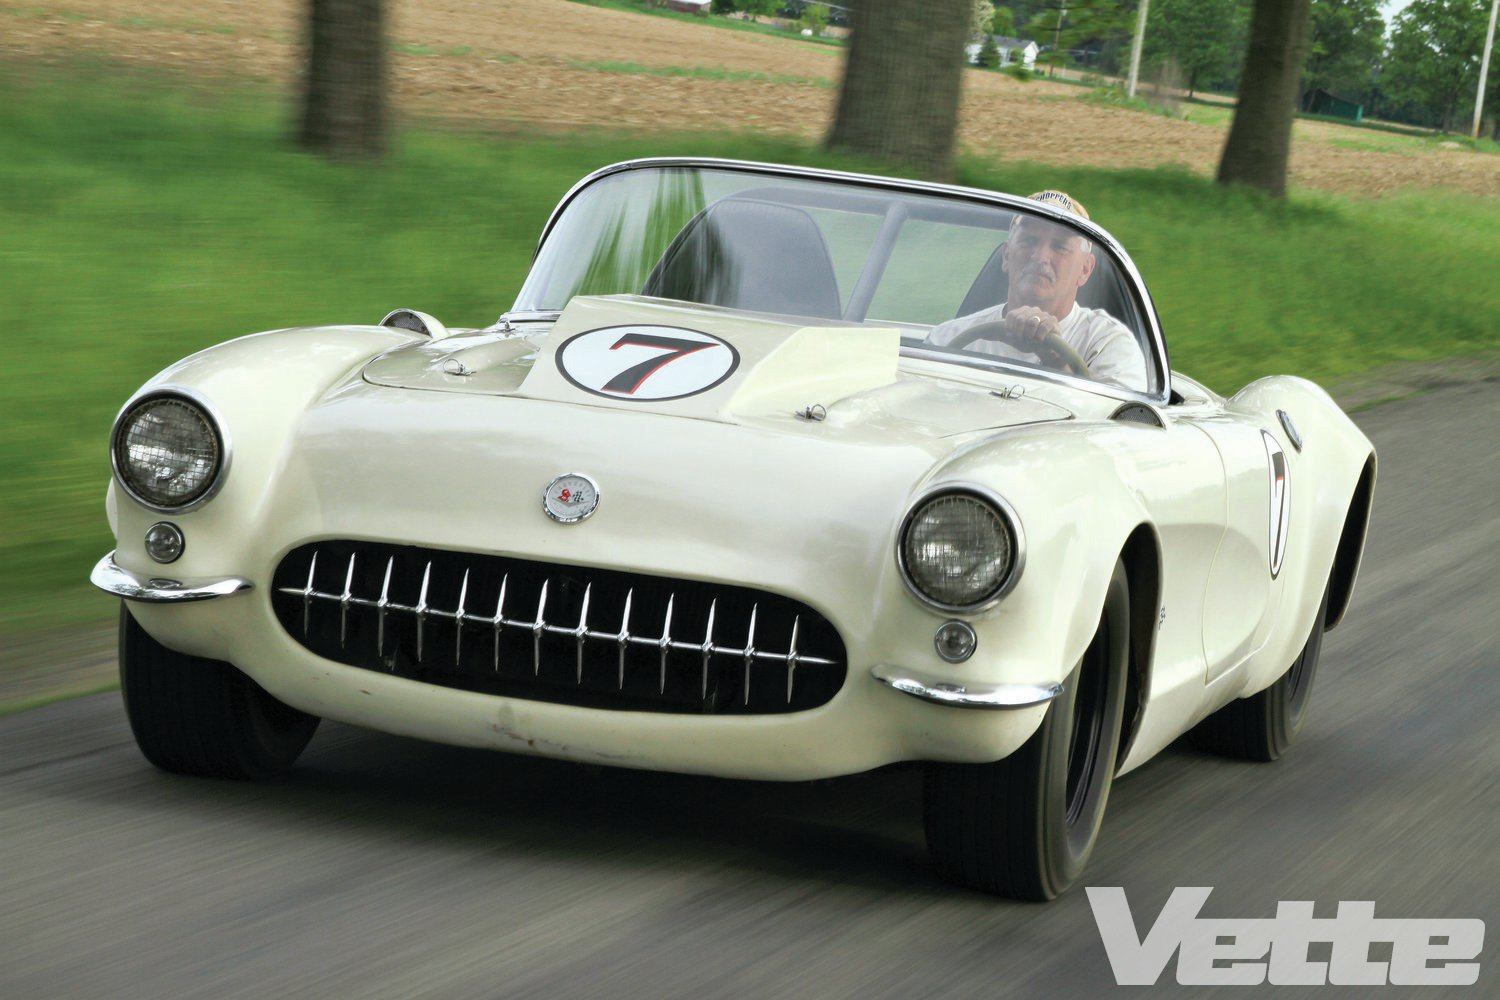 1957 Chevrolet Corvette - Pilot Car